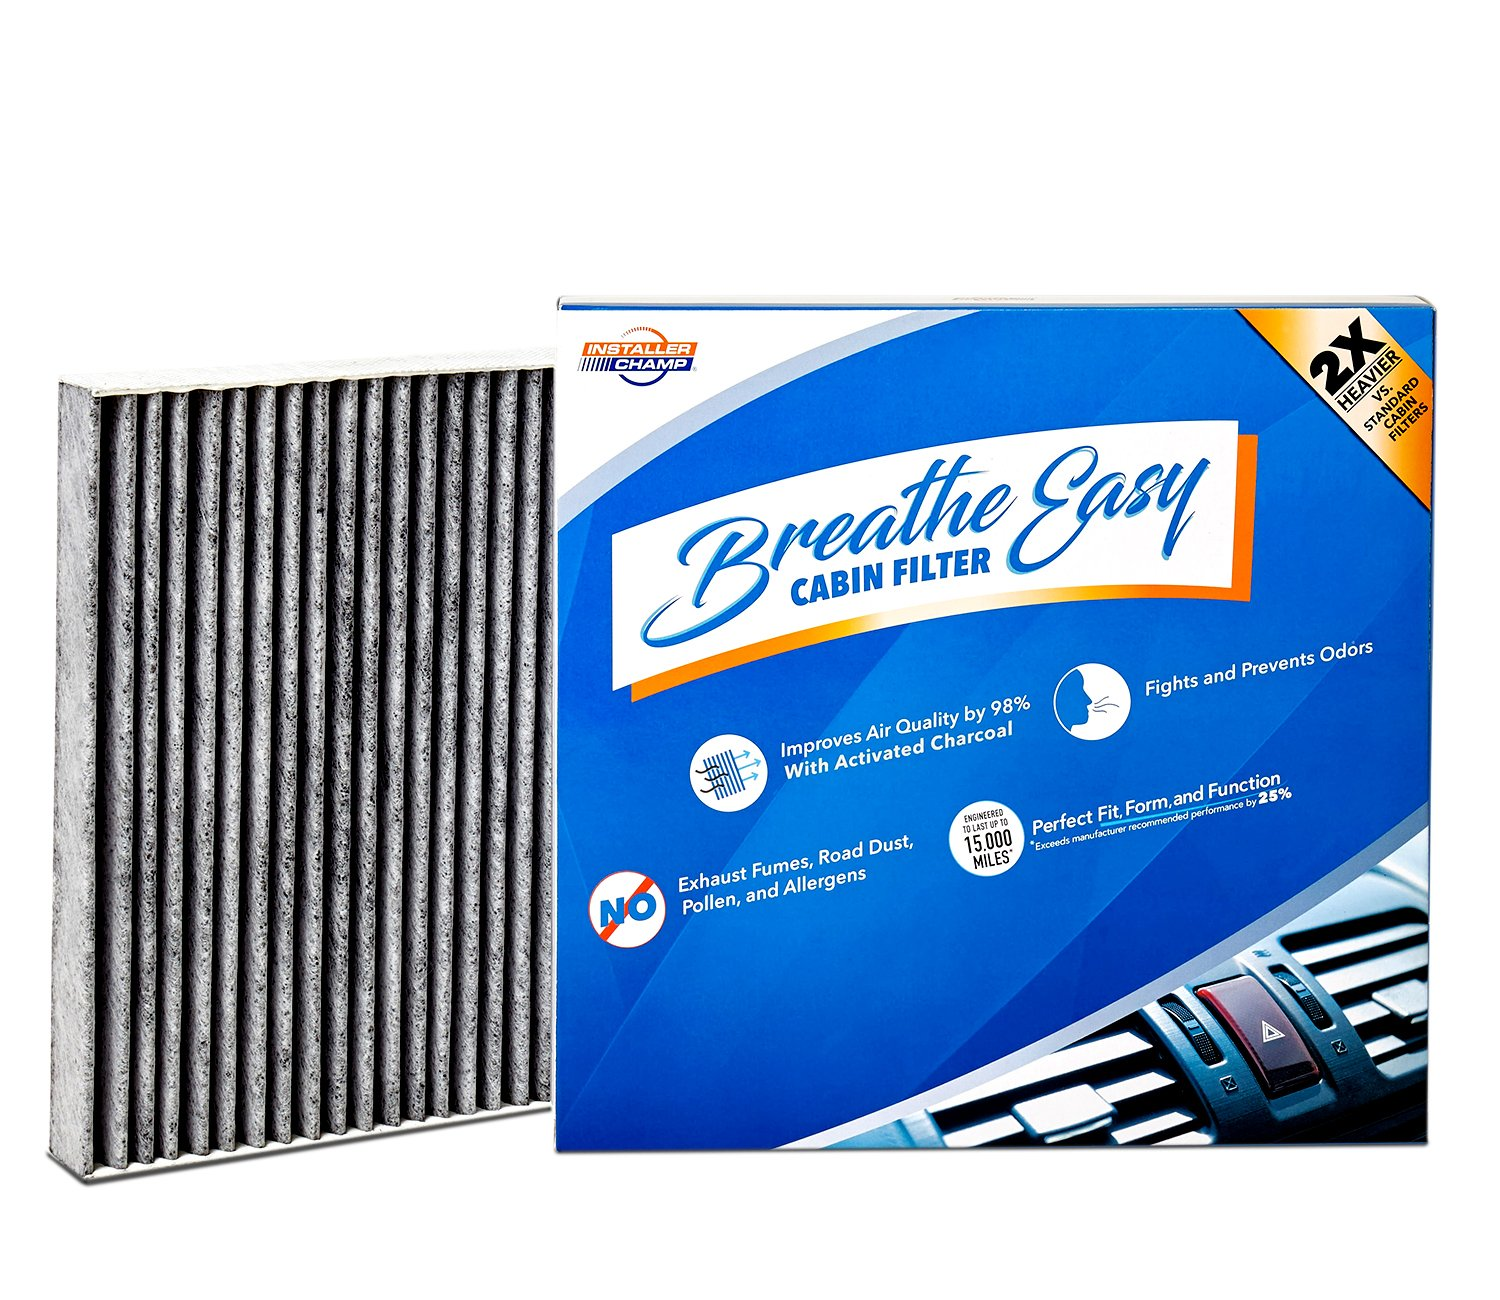 Installer Champ Premium Breathe Easy Cabin Filter, Up to 25% Longer Life w/Activated Carbon (BE-000)